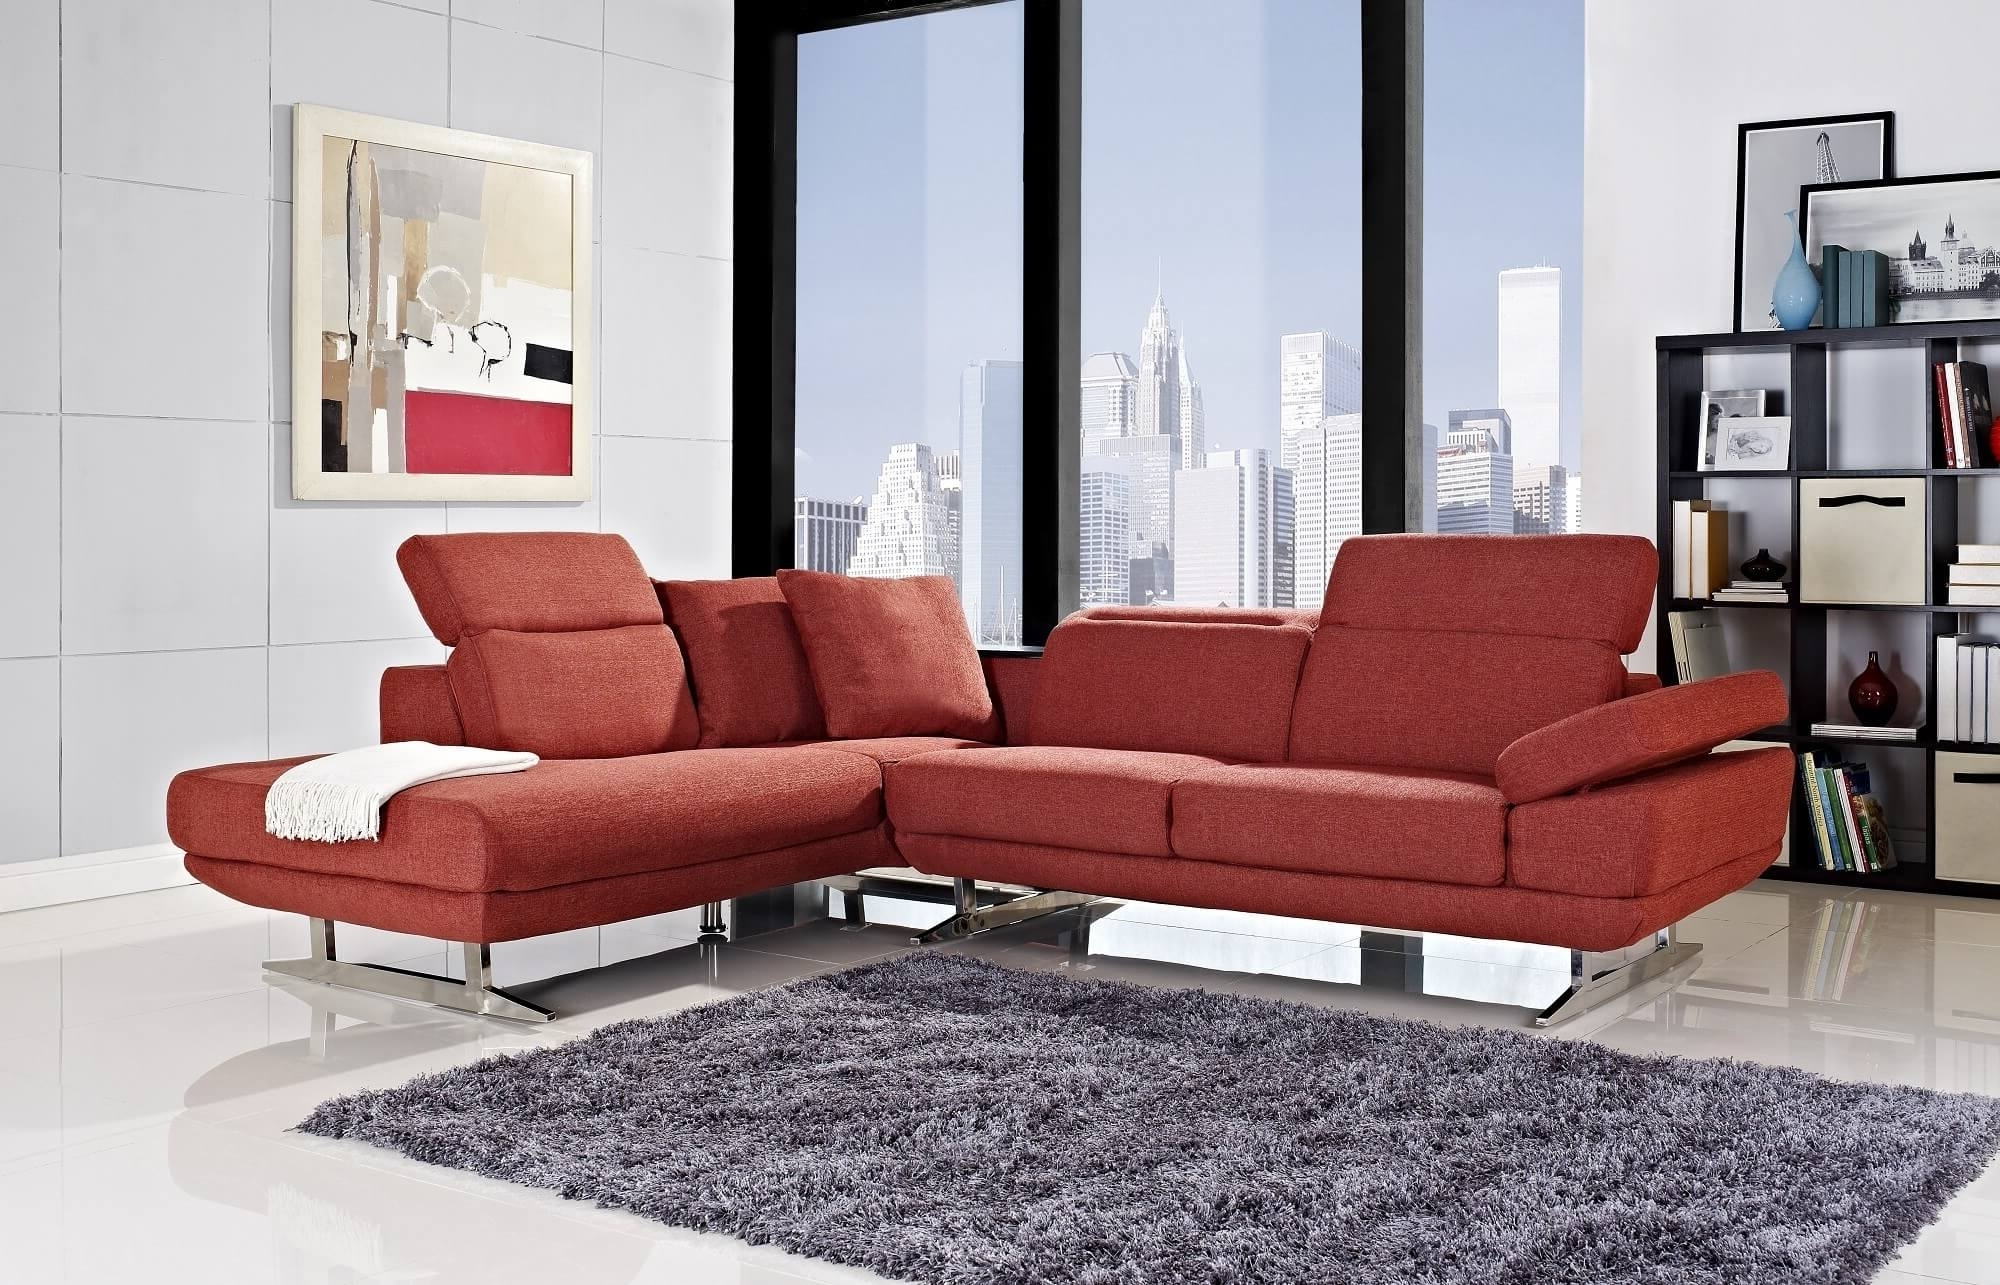 Well Known Red Faux Leather Sectionals Intended For Red Sectional Sofa. Red Faux Leather Sectional Sofa (View 13 of 15)